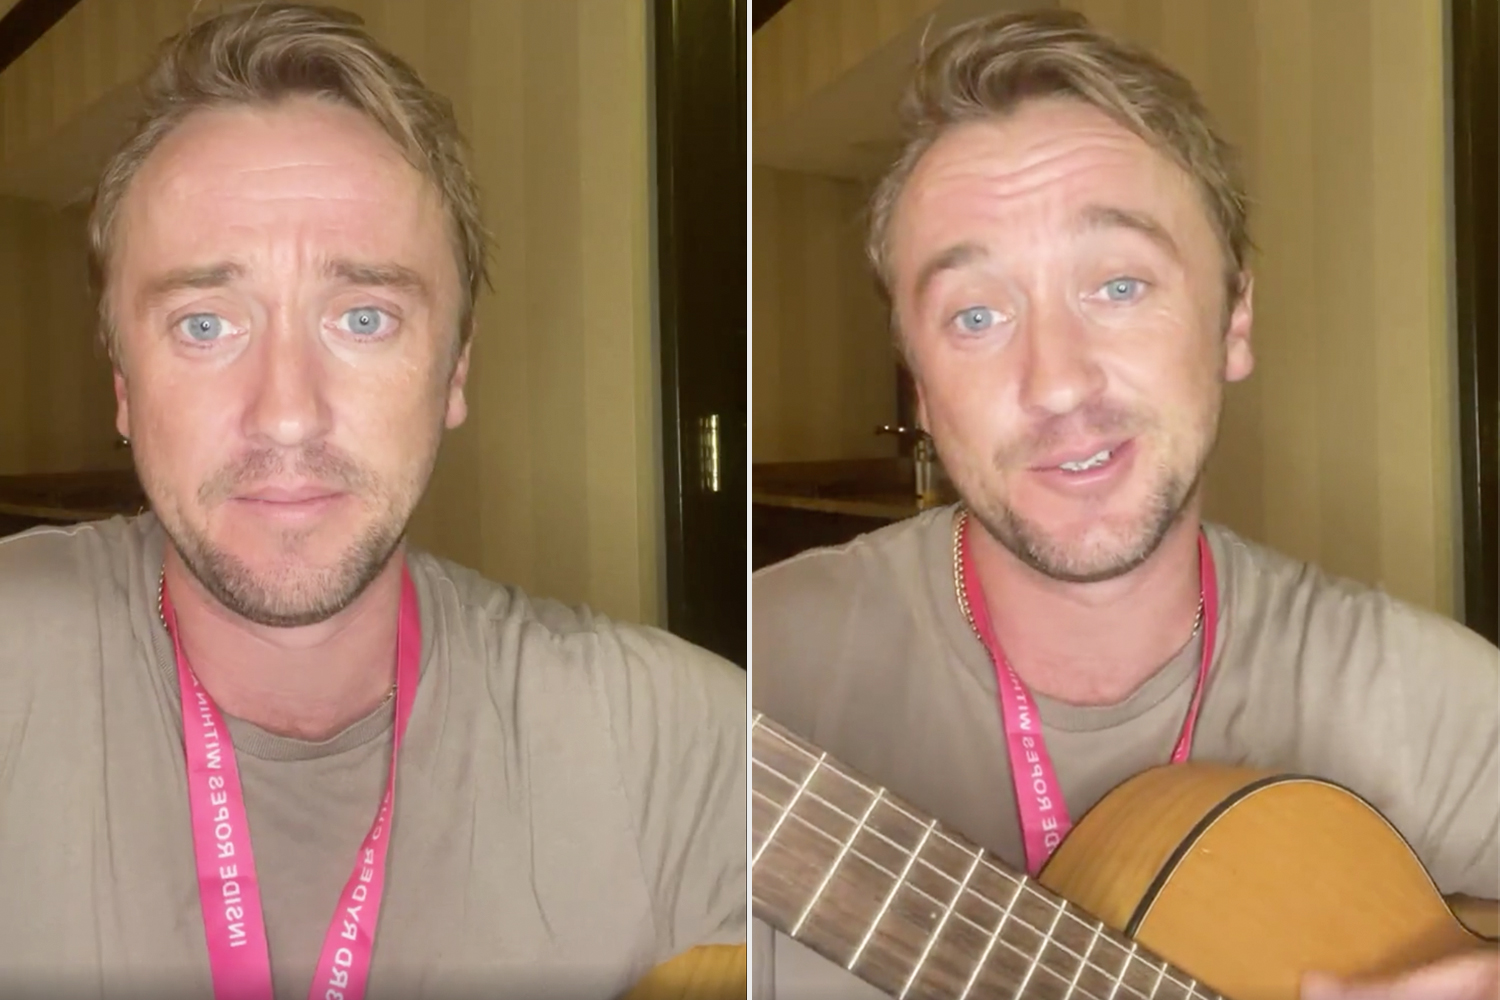 Tom Felton Sings That He'll 'Be Doing Fine' as He Gives Health Update with His Guitar: 'On the Mend'